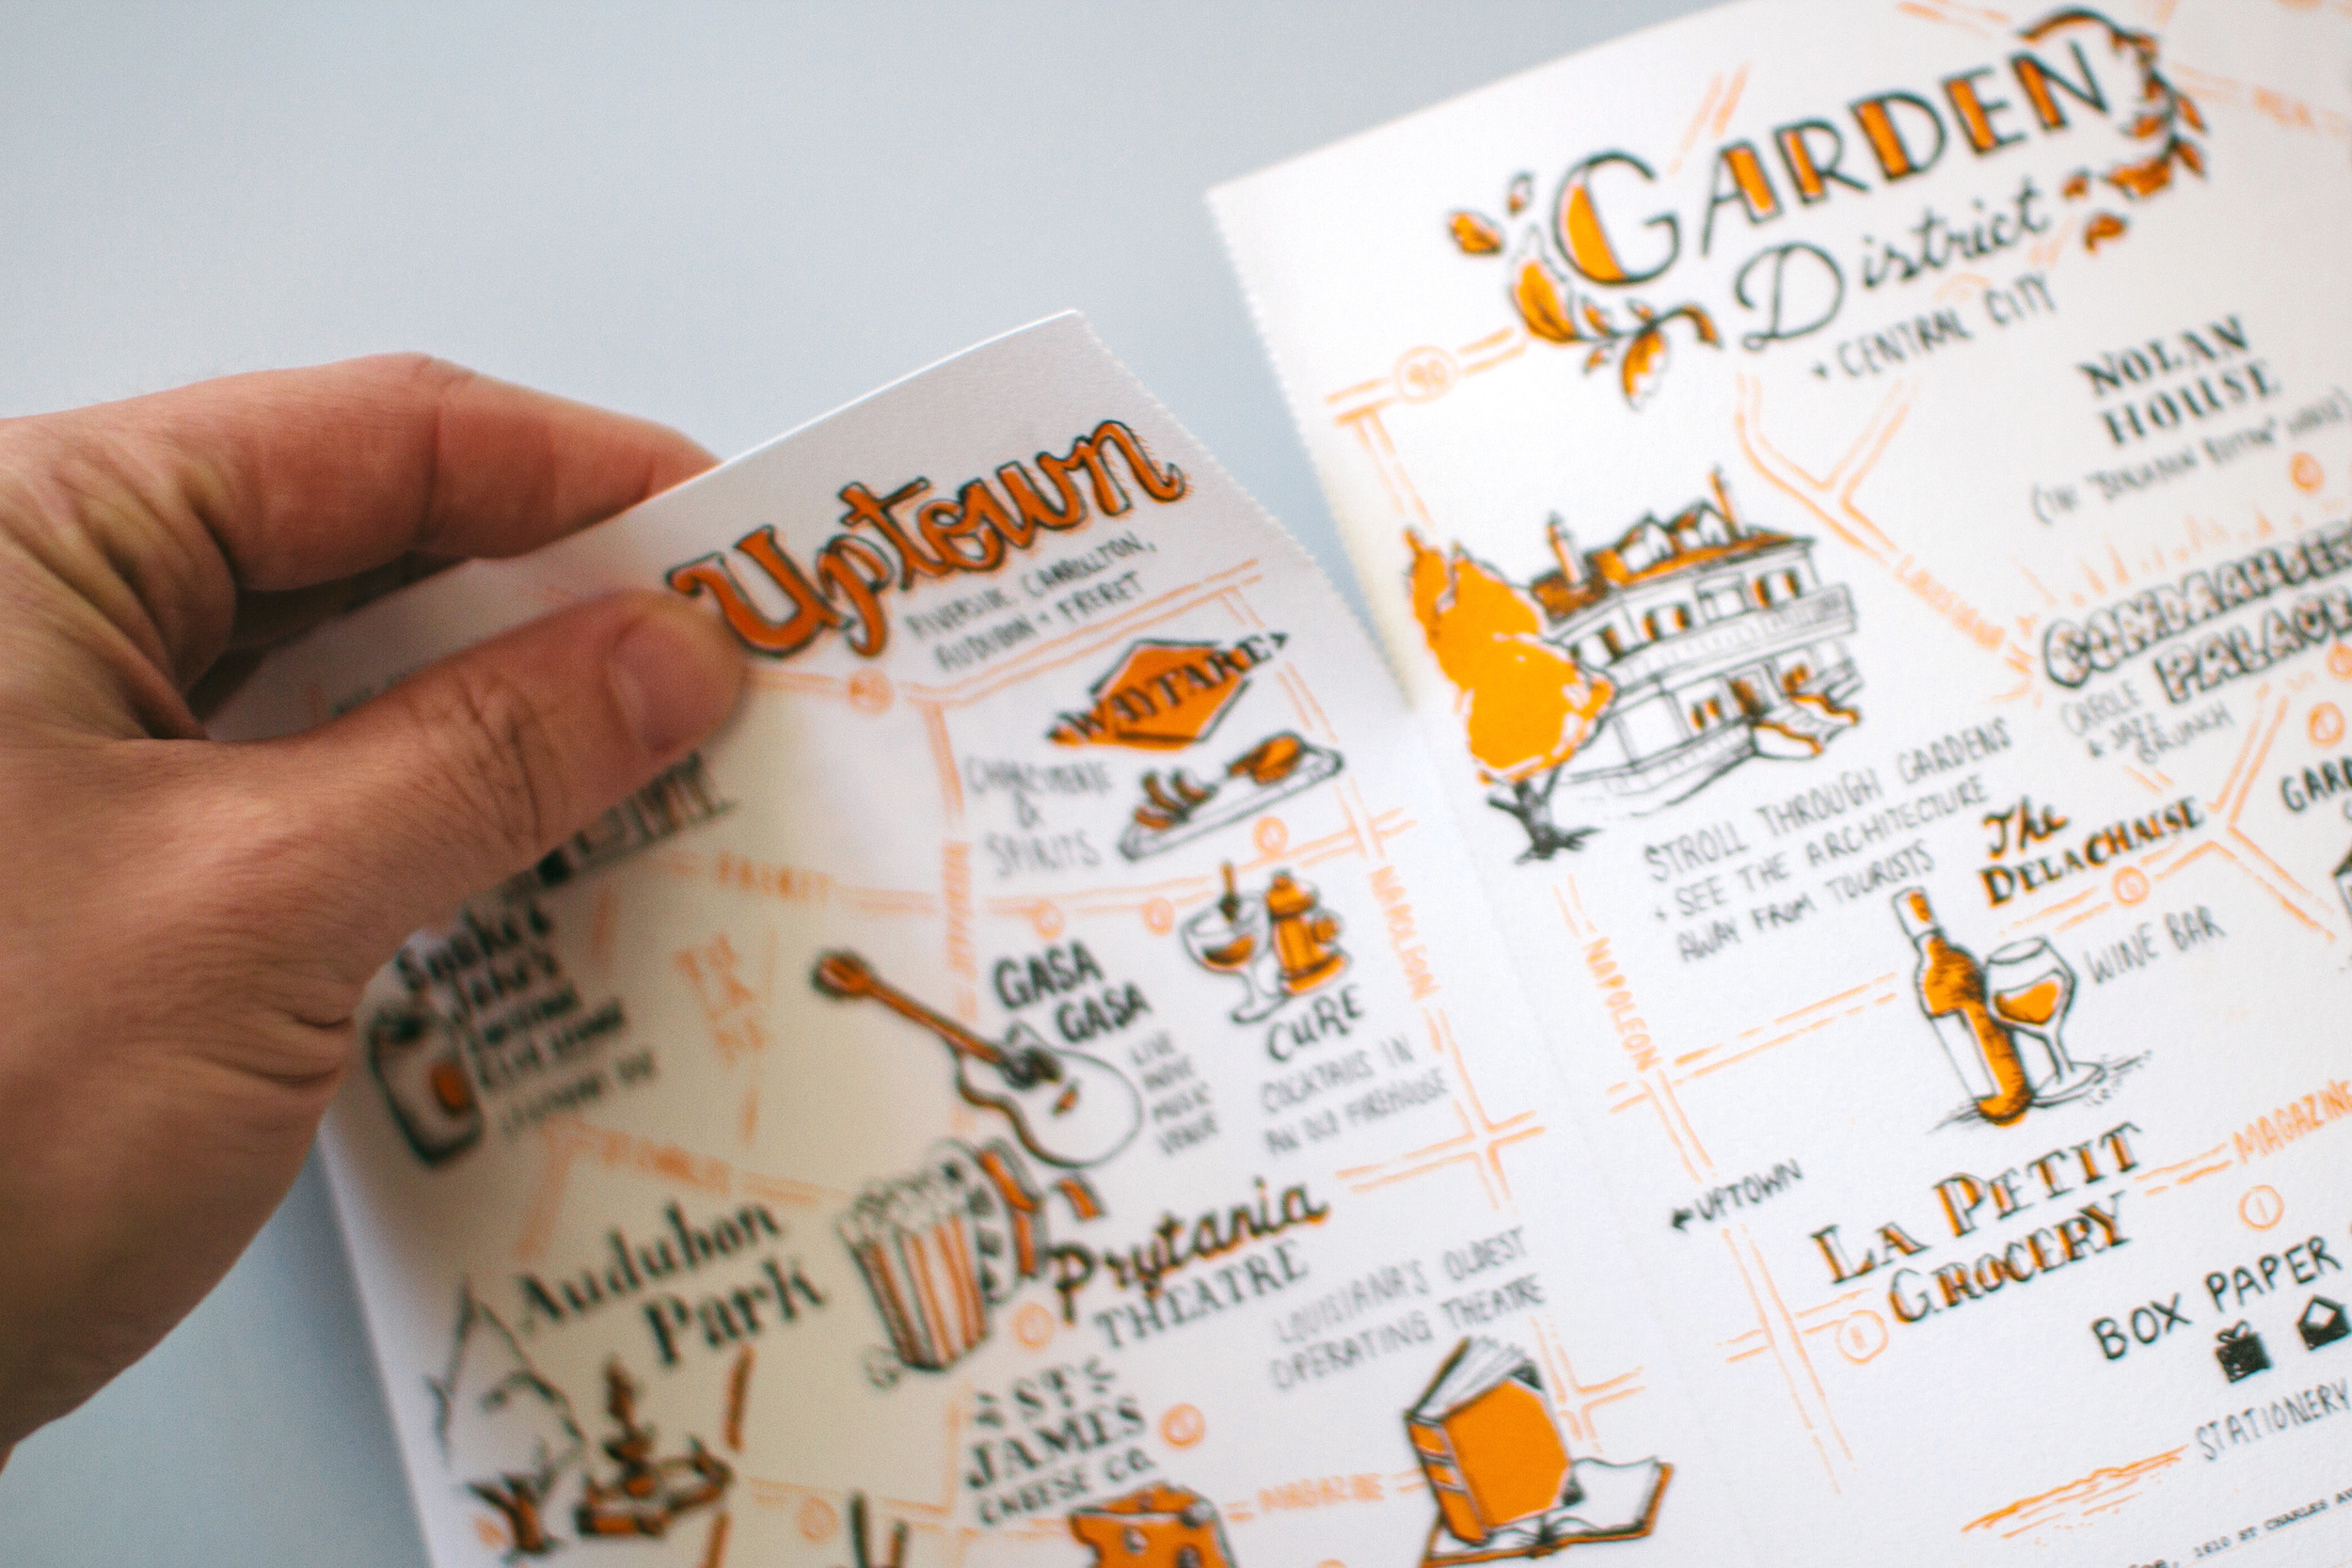 The perforated edge between each neighborhood map allows the viewer to separate each one as an individual postcard or print. Here, someone tears the Uptown card off of the Garden District neighborhood guide.